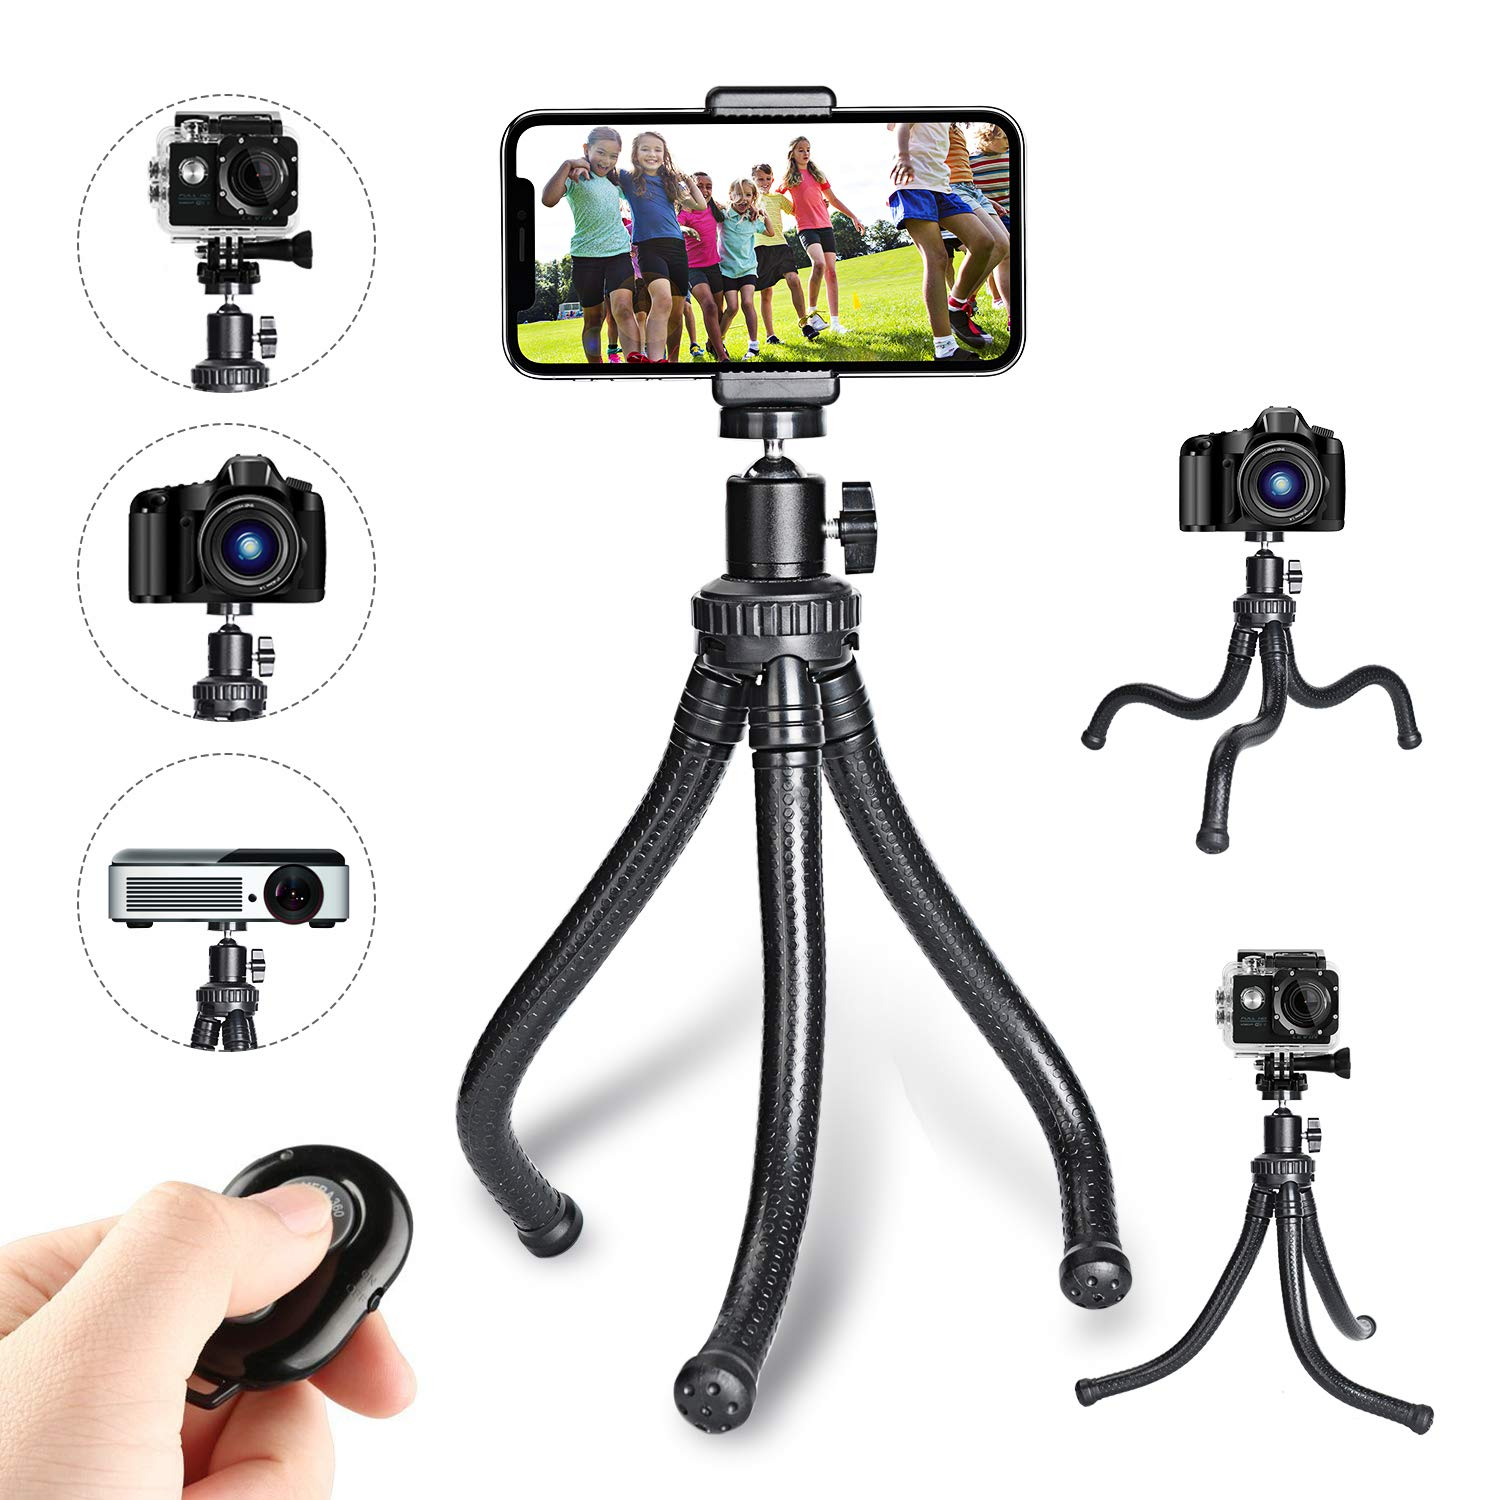 Leypin Flexible Phone Tripod,Portable and Adjustable Camera Stand Holder with Wireless Remote and Universal Clip 360°Rotating Suitable for iPhone, Android Phone, Camera, Sports Camera GoPro